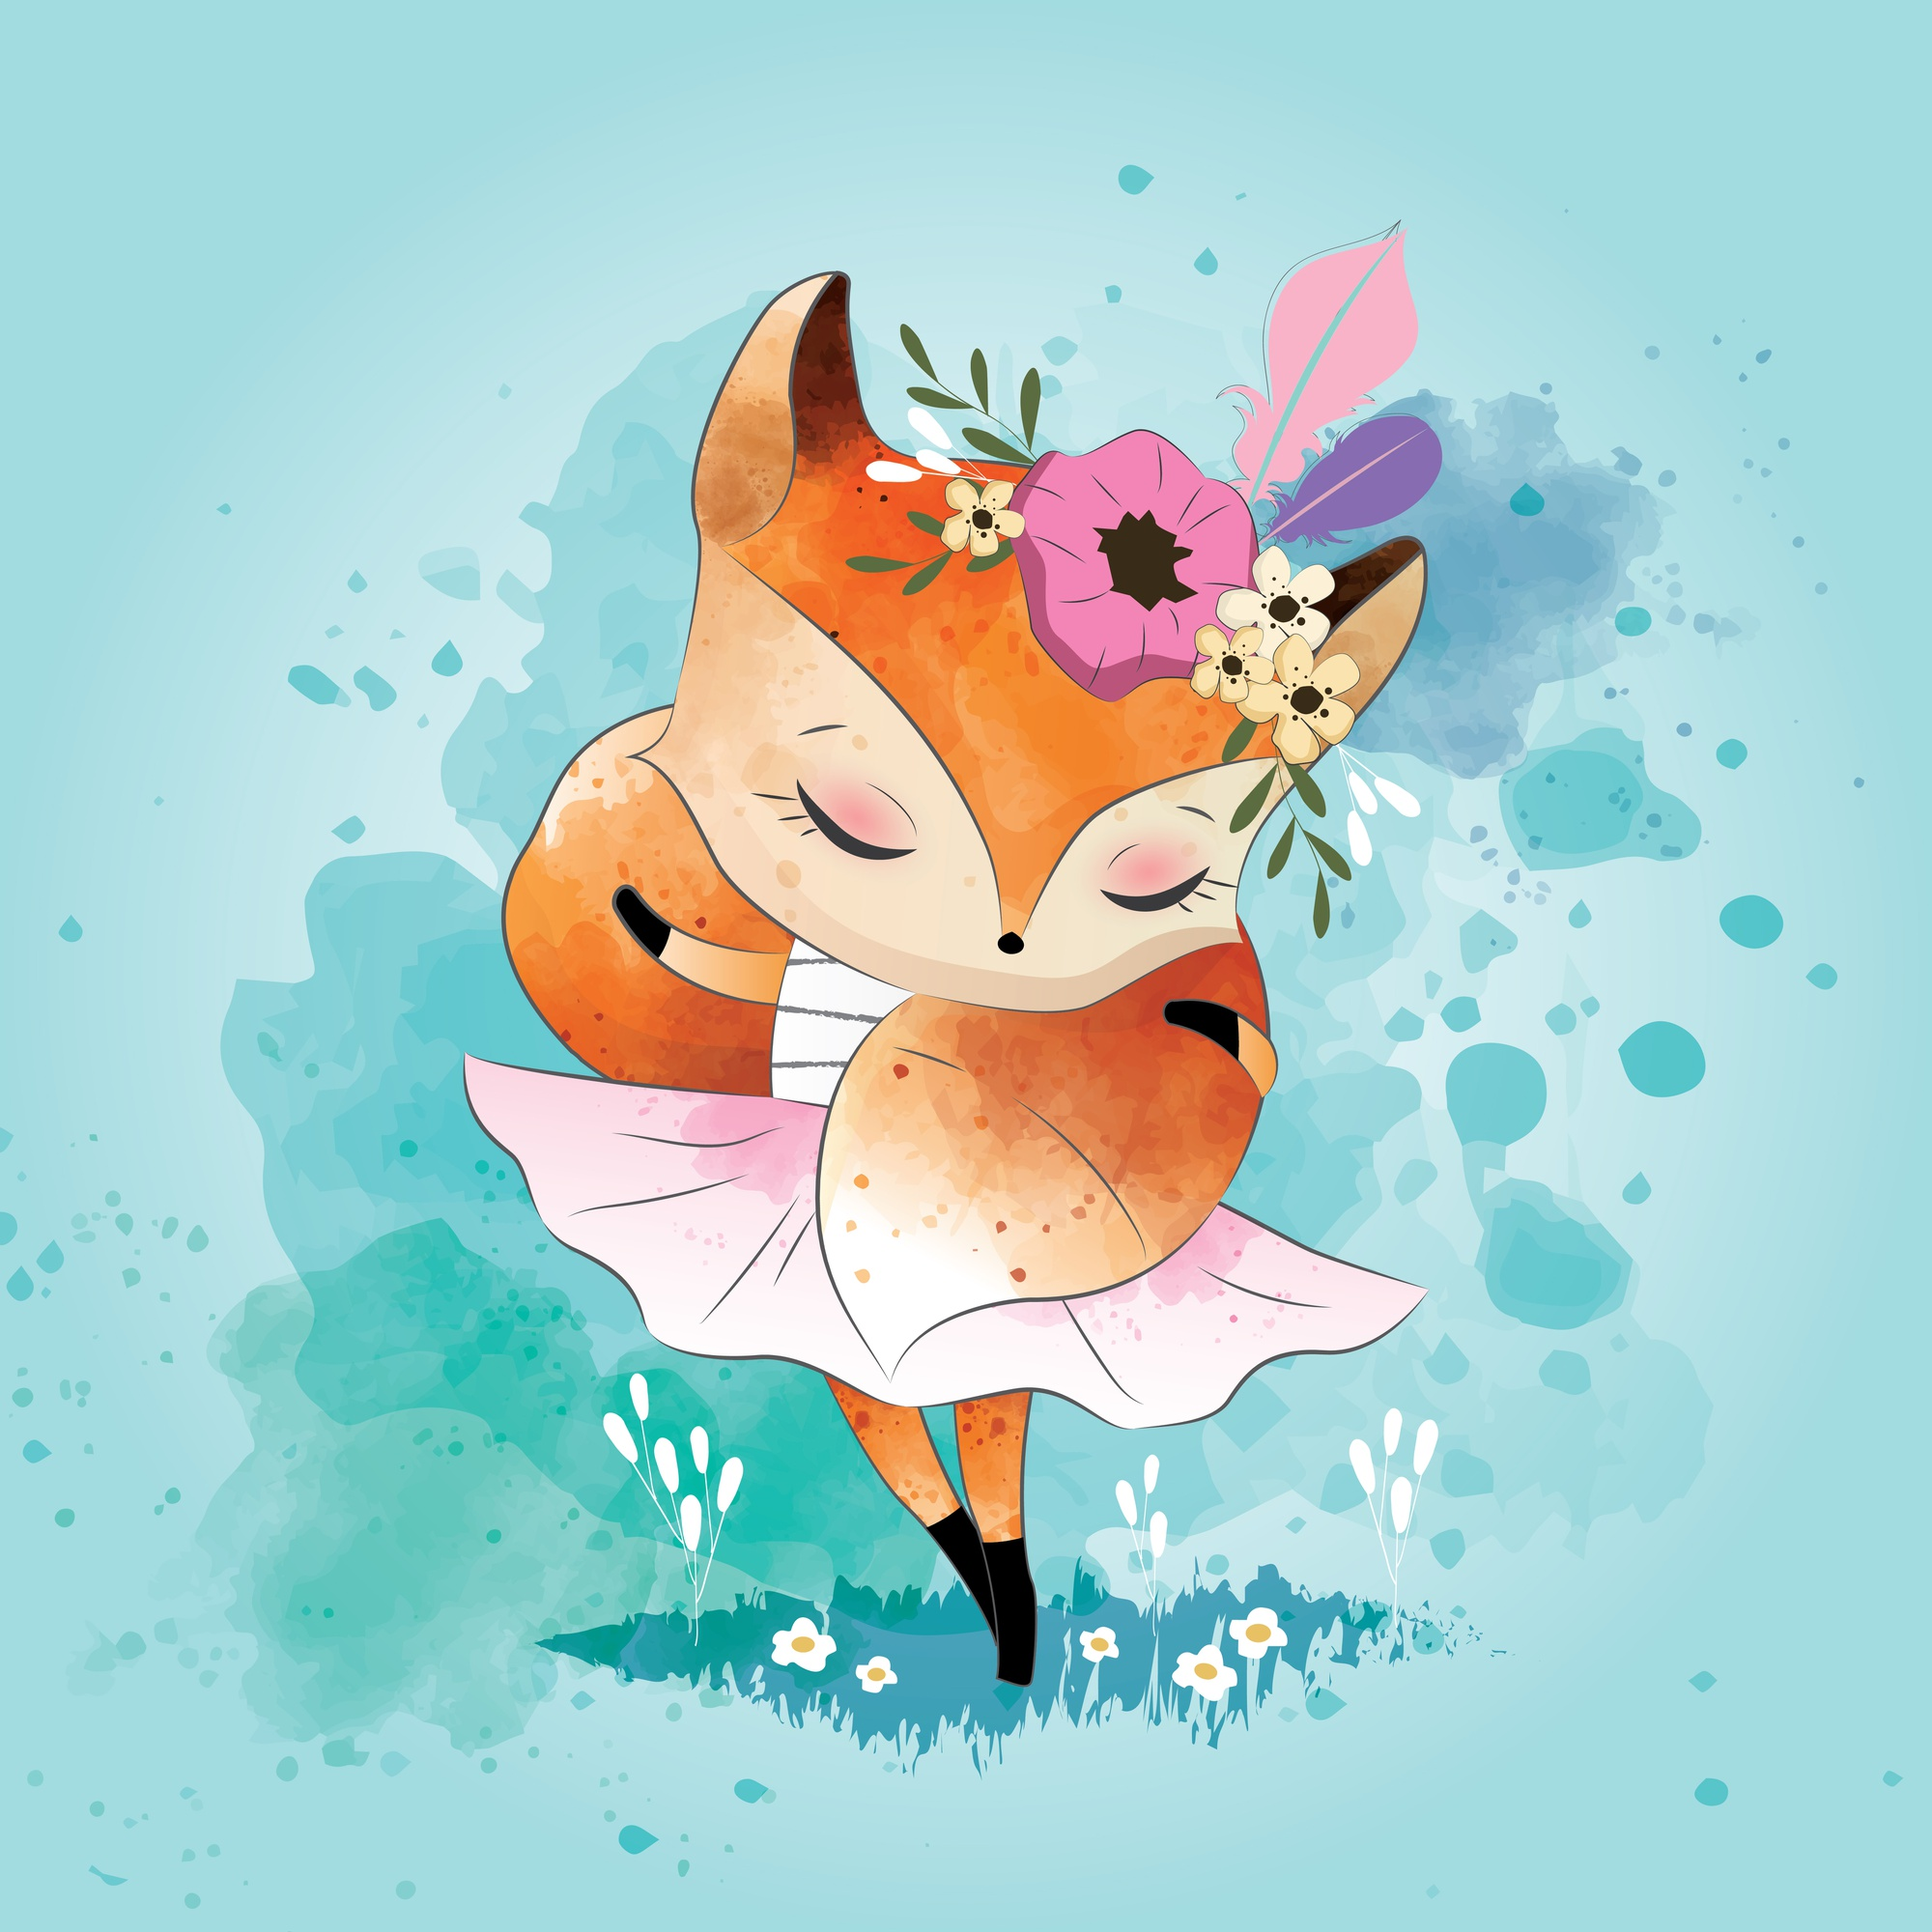 Little Fox with Its Tail Scarf